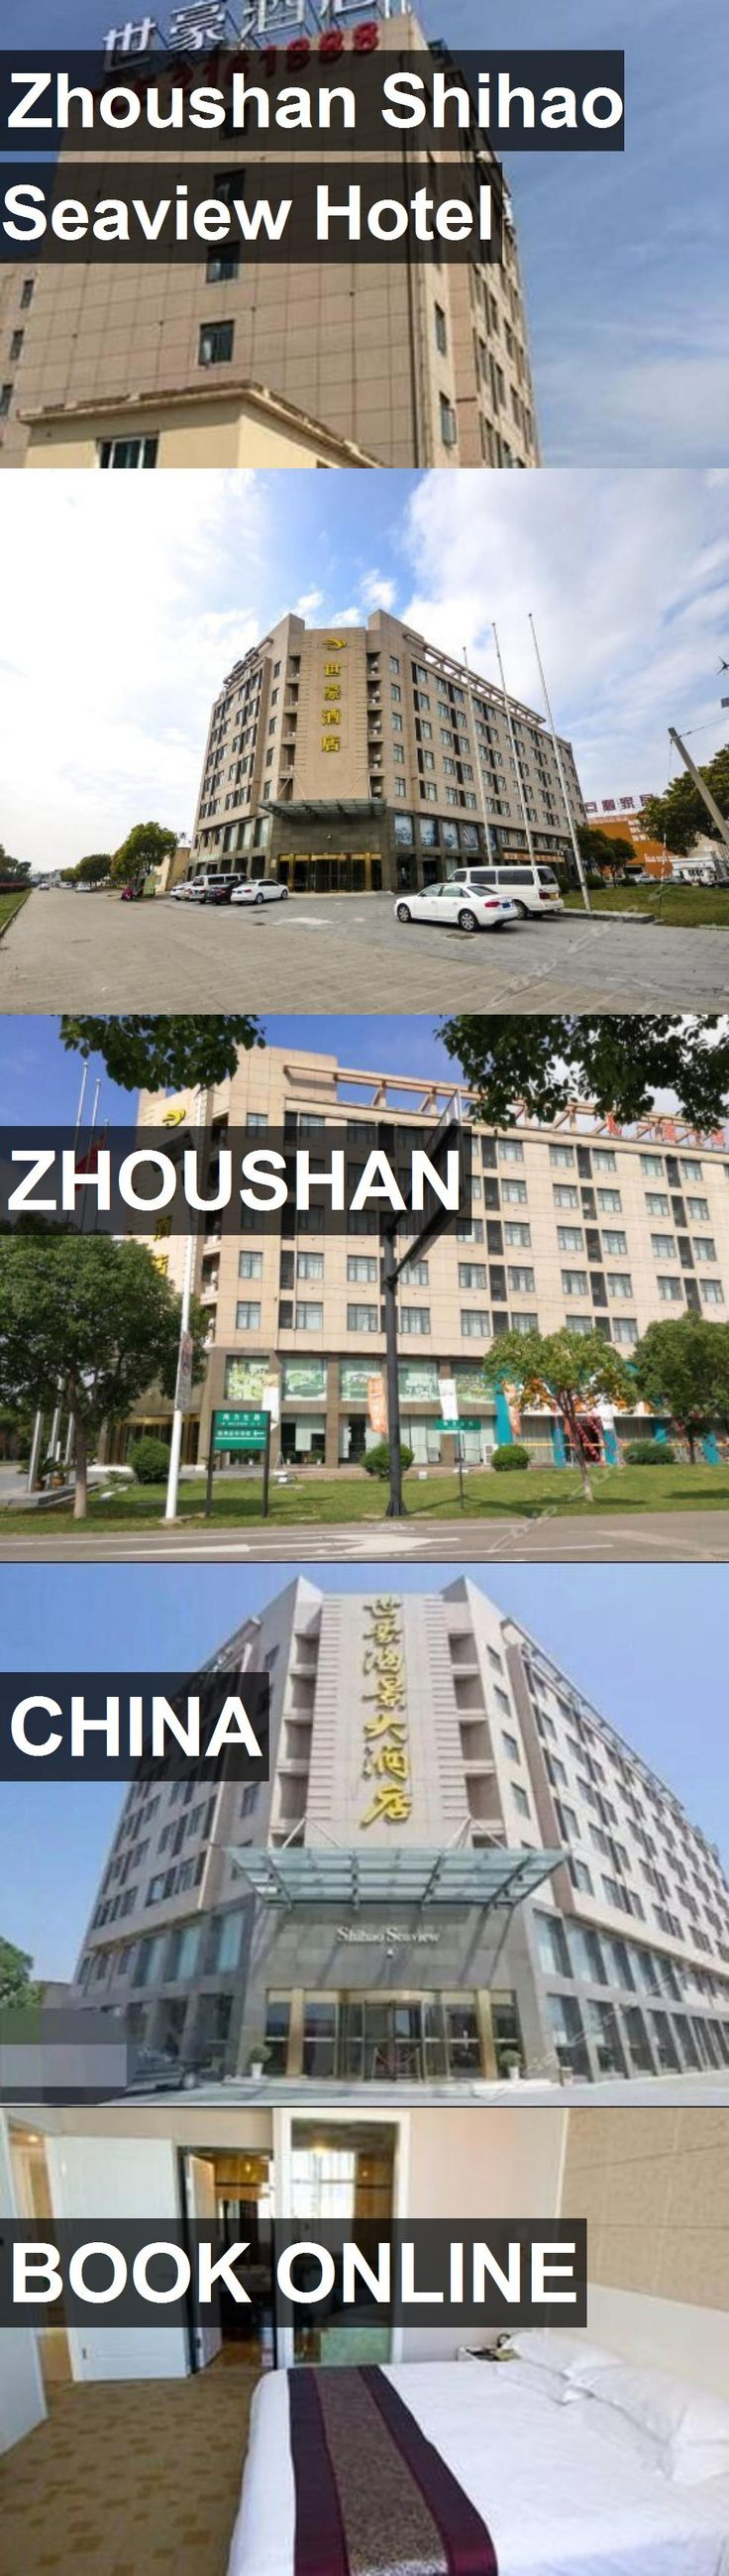 Zhoushan Shihao Seaview Hotel in Zhoushan, China. For more information, photos, reviews and best prices please follow the link. #China #Zhoushan #travel #vacation #hotel